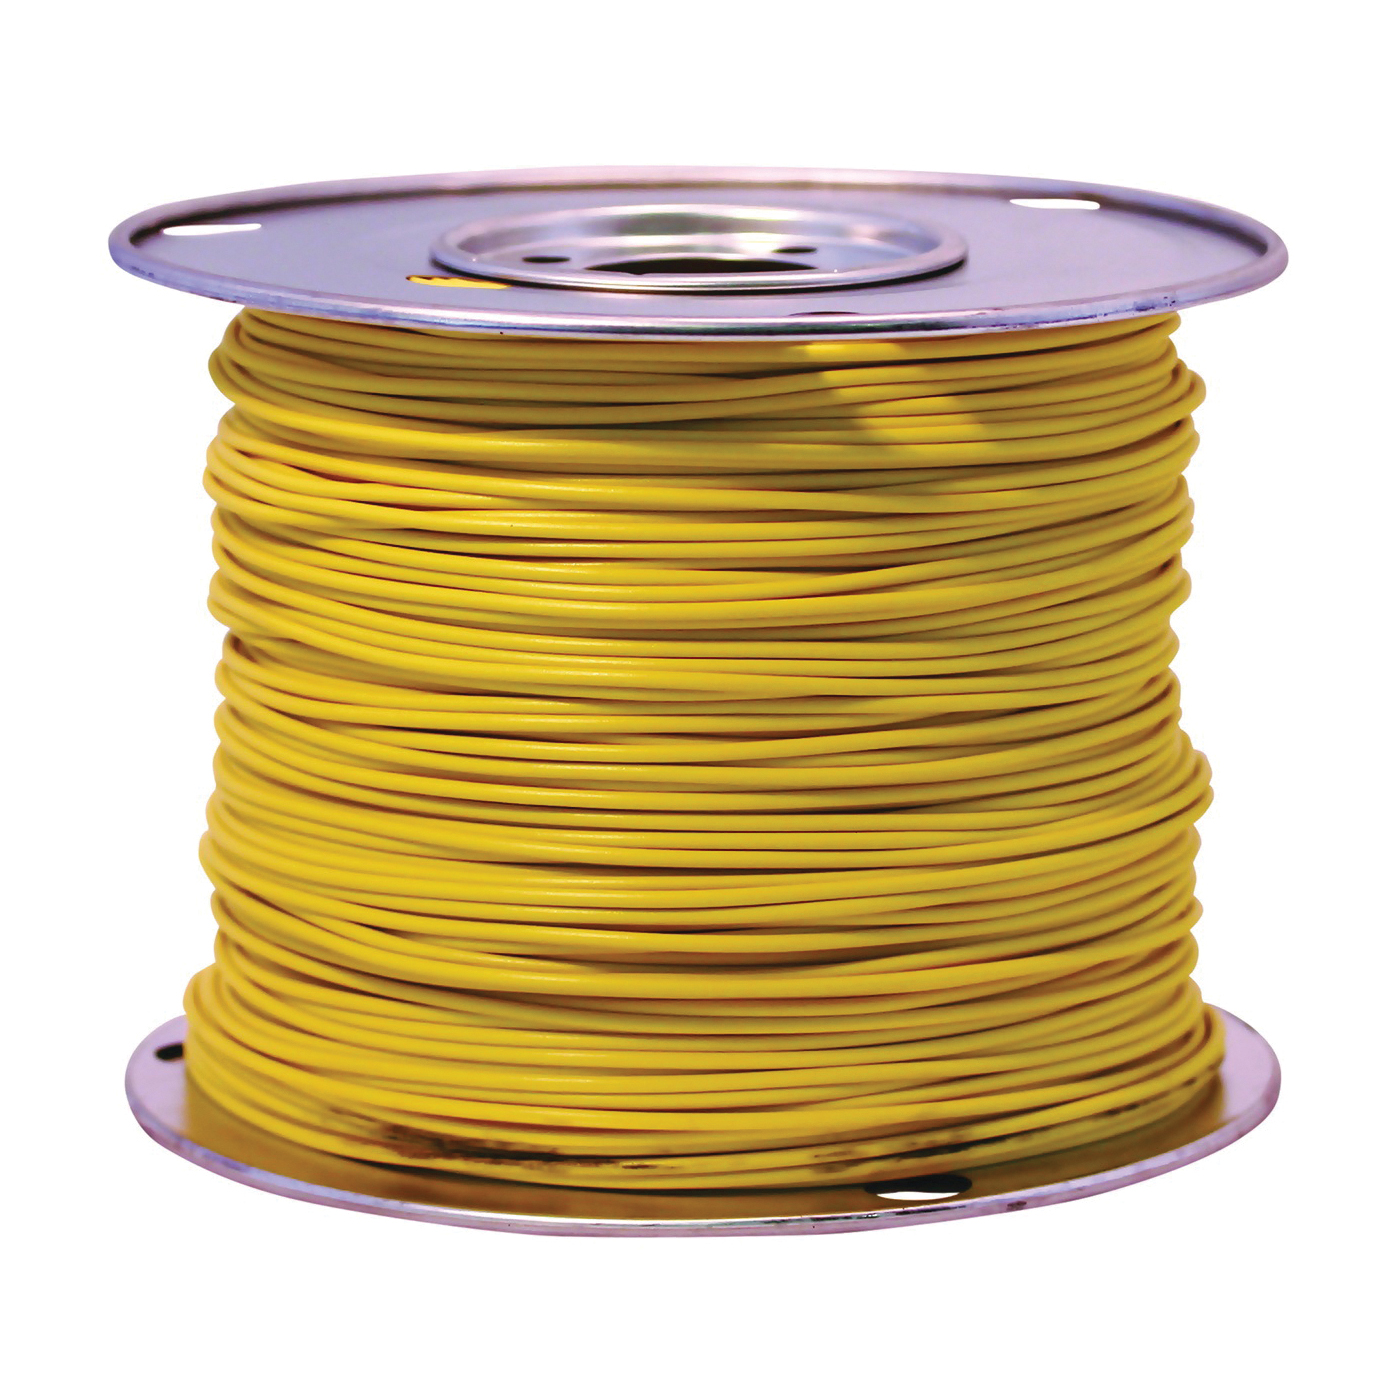 Picture of CCI 55670823 Primary Wire, 14 AWG Wire, 1 -Conductor, 60 VDC, Stranded Copper Conductor, Yellow Sheath